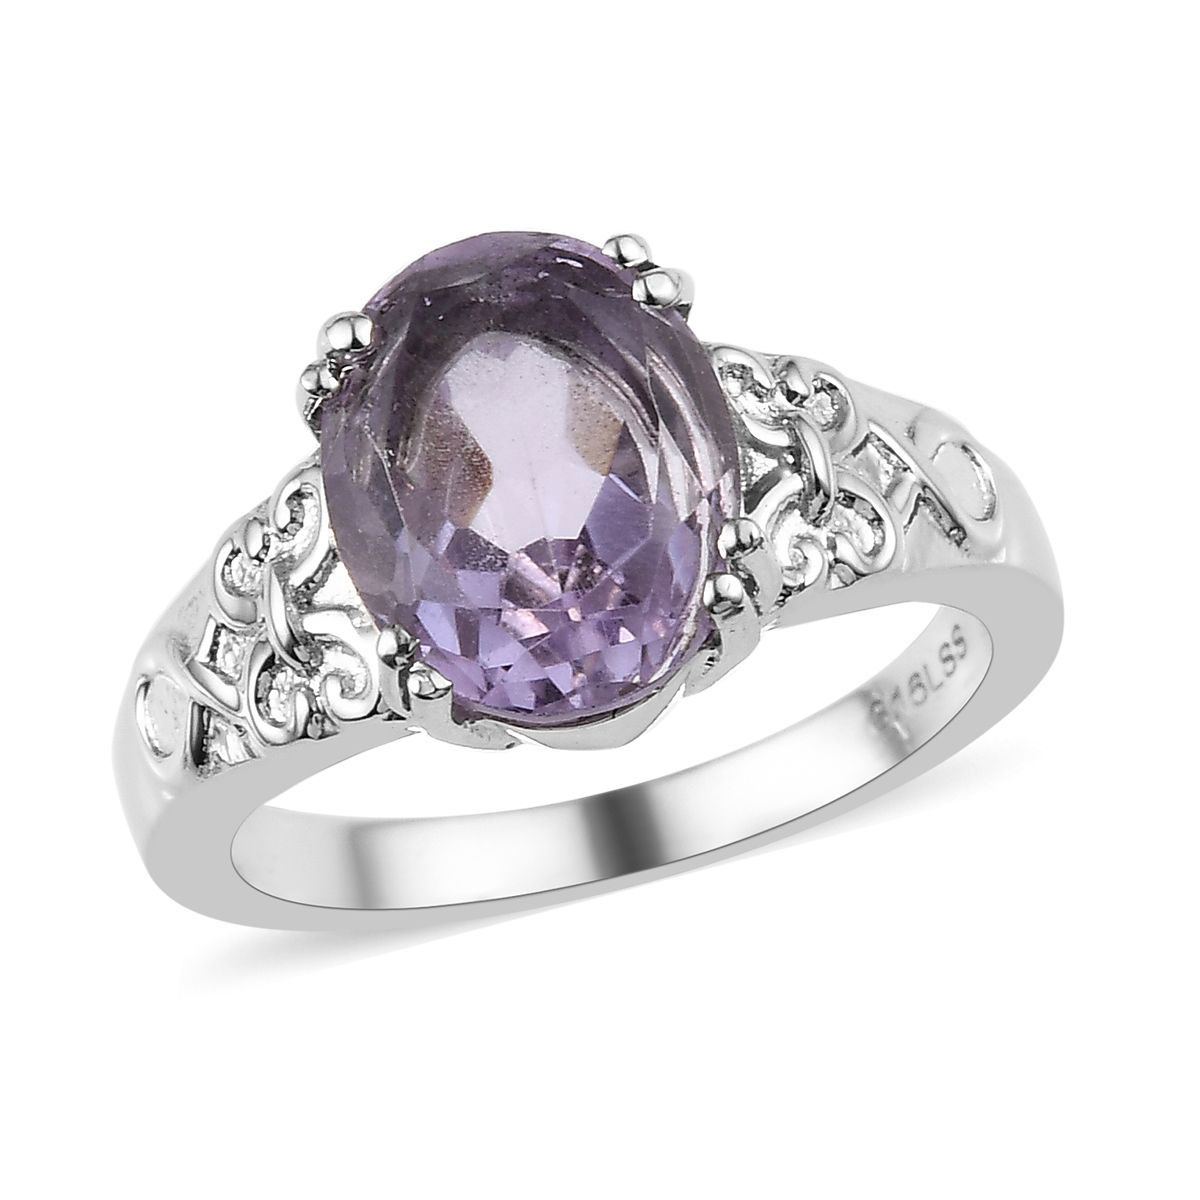 Shop LC Delivering Joy 5 Stone Ring Stainless Steel Oval Amethyst Jewelry for Women Ct 1